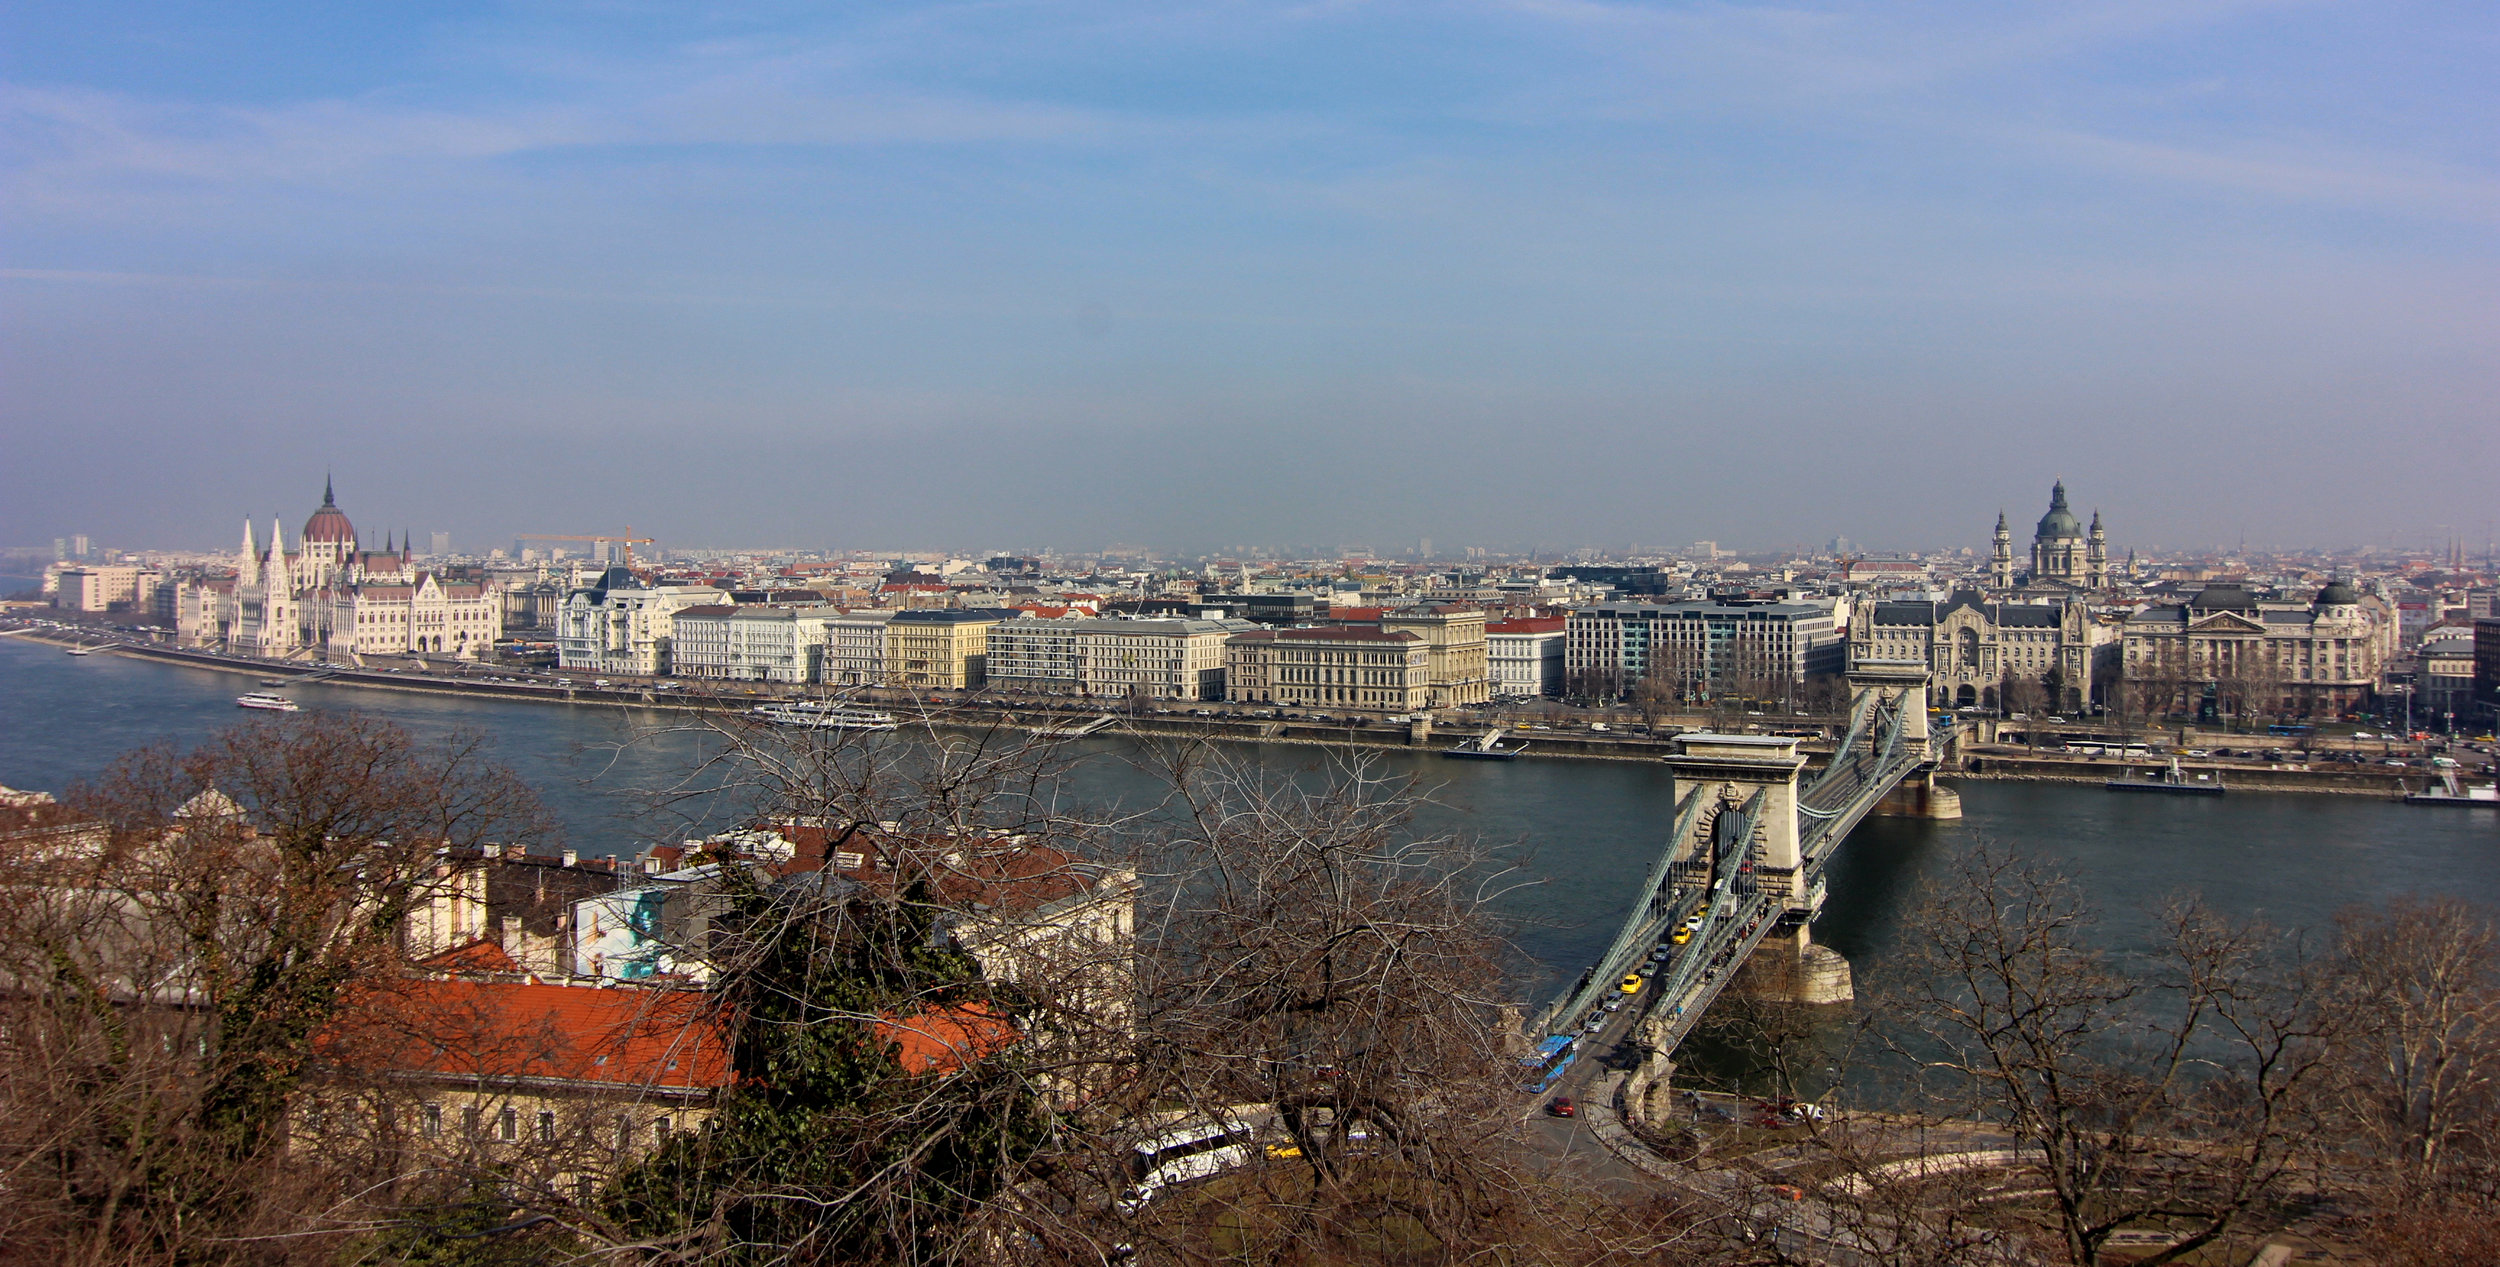 View of Pest and the Chain Bridge.